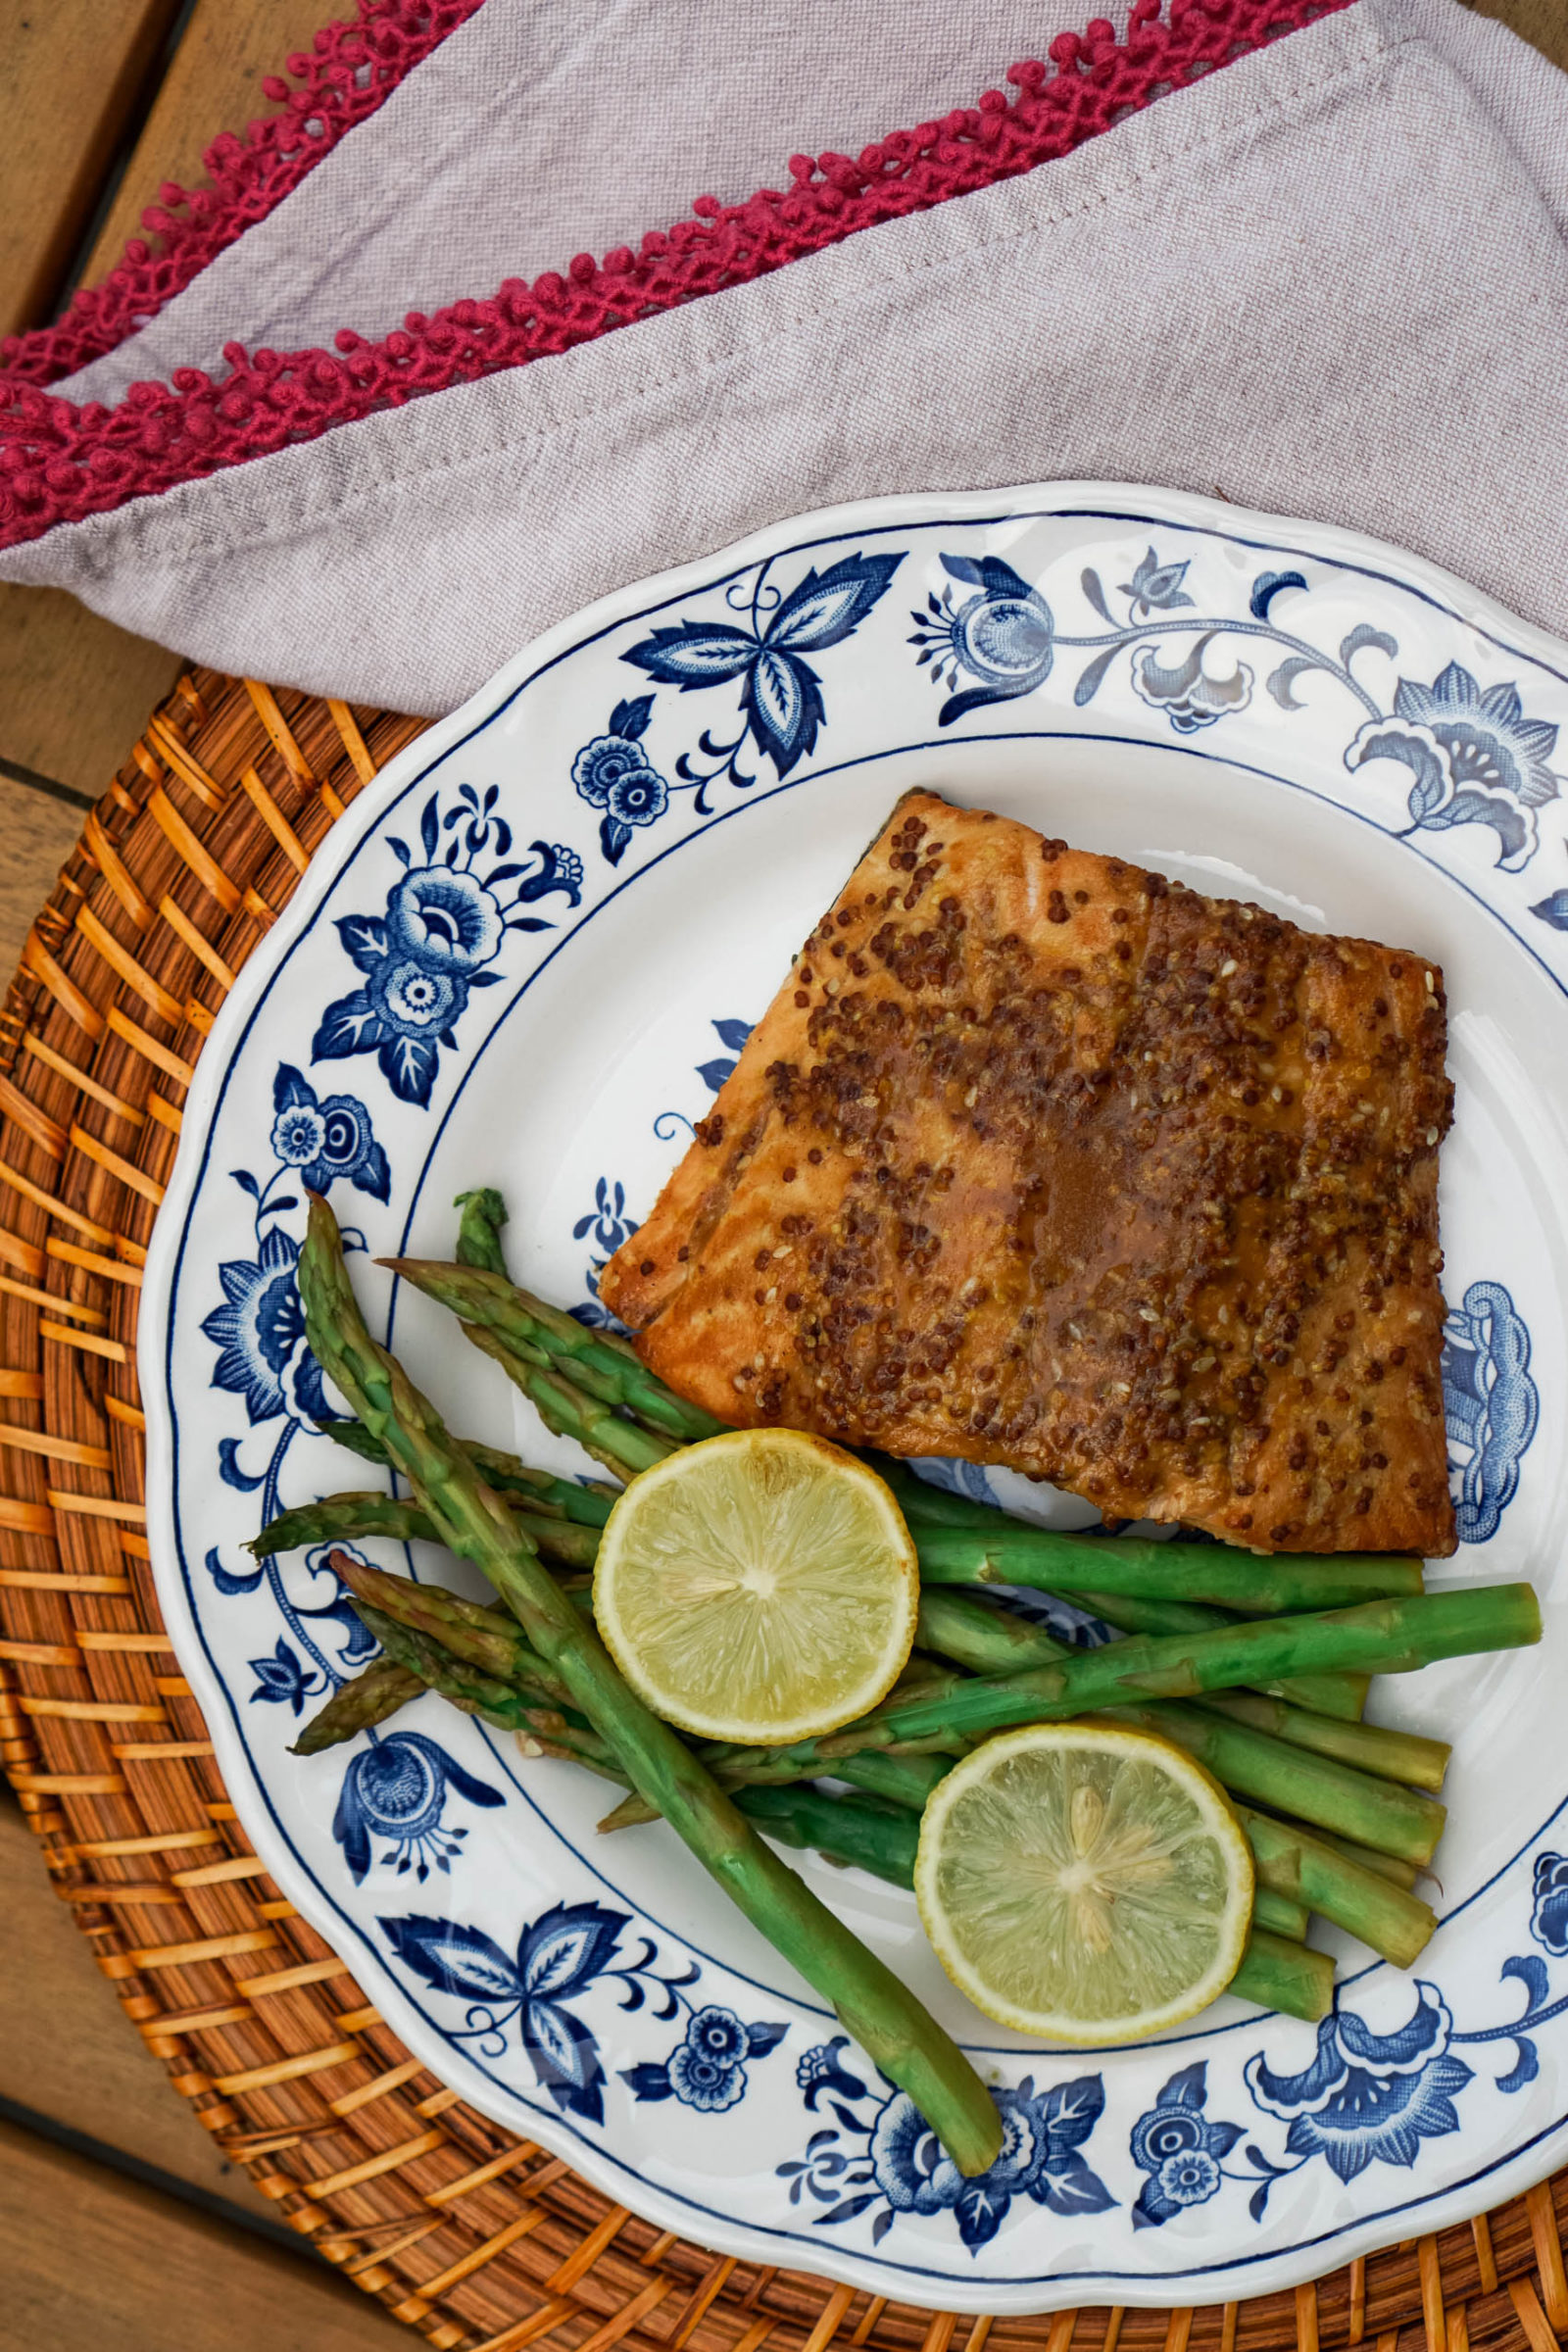 Healthy Weeknight Dinner Recipe: Sesame-Ginger Salmon | Requiring less than 30 minutes of active cooking time, this recipe is perfect for a protein-packed weeknight dinner if you only want to use one pan